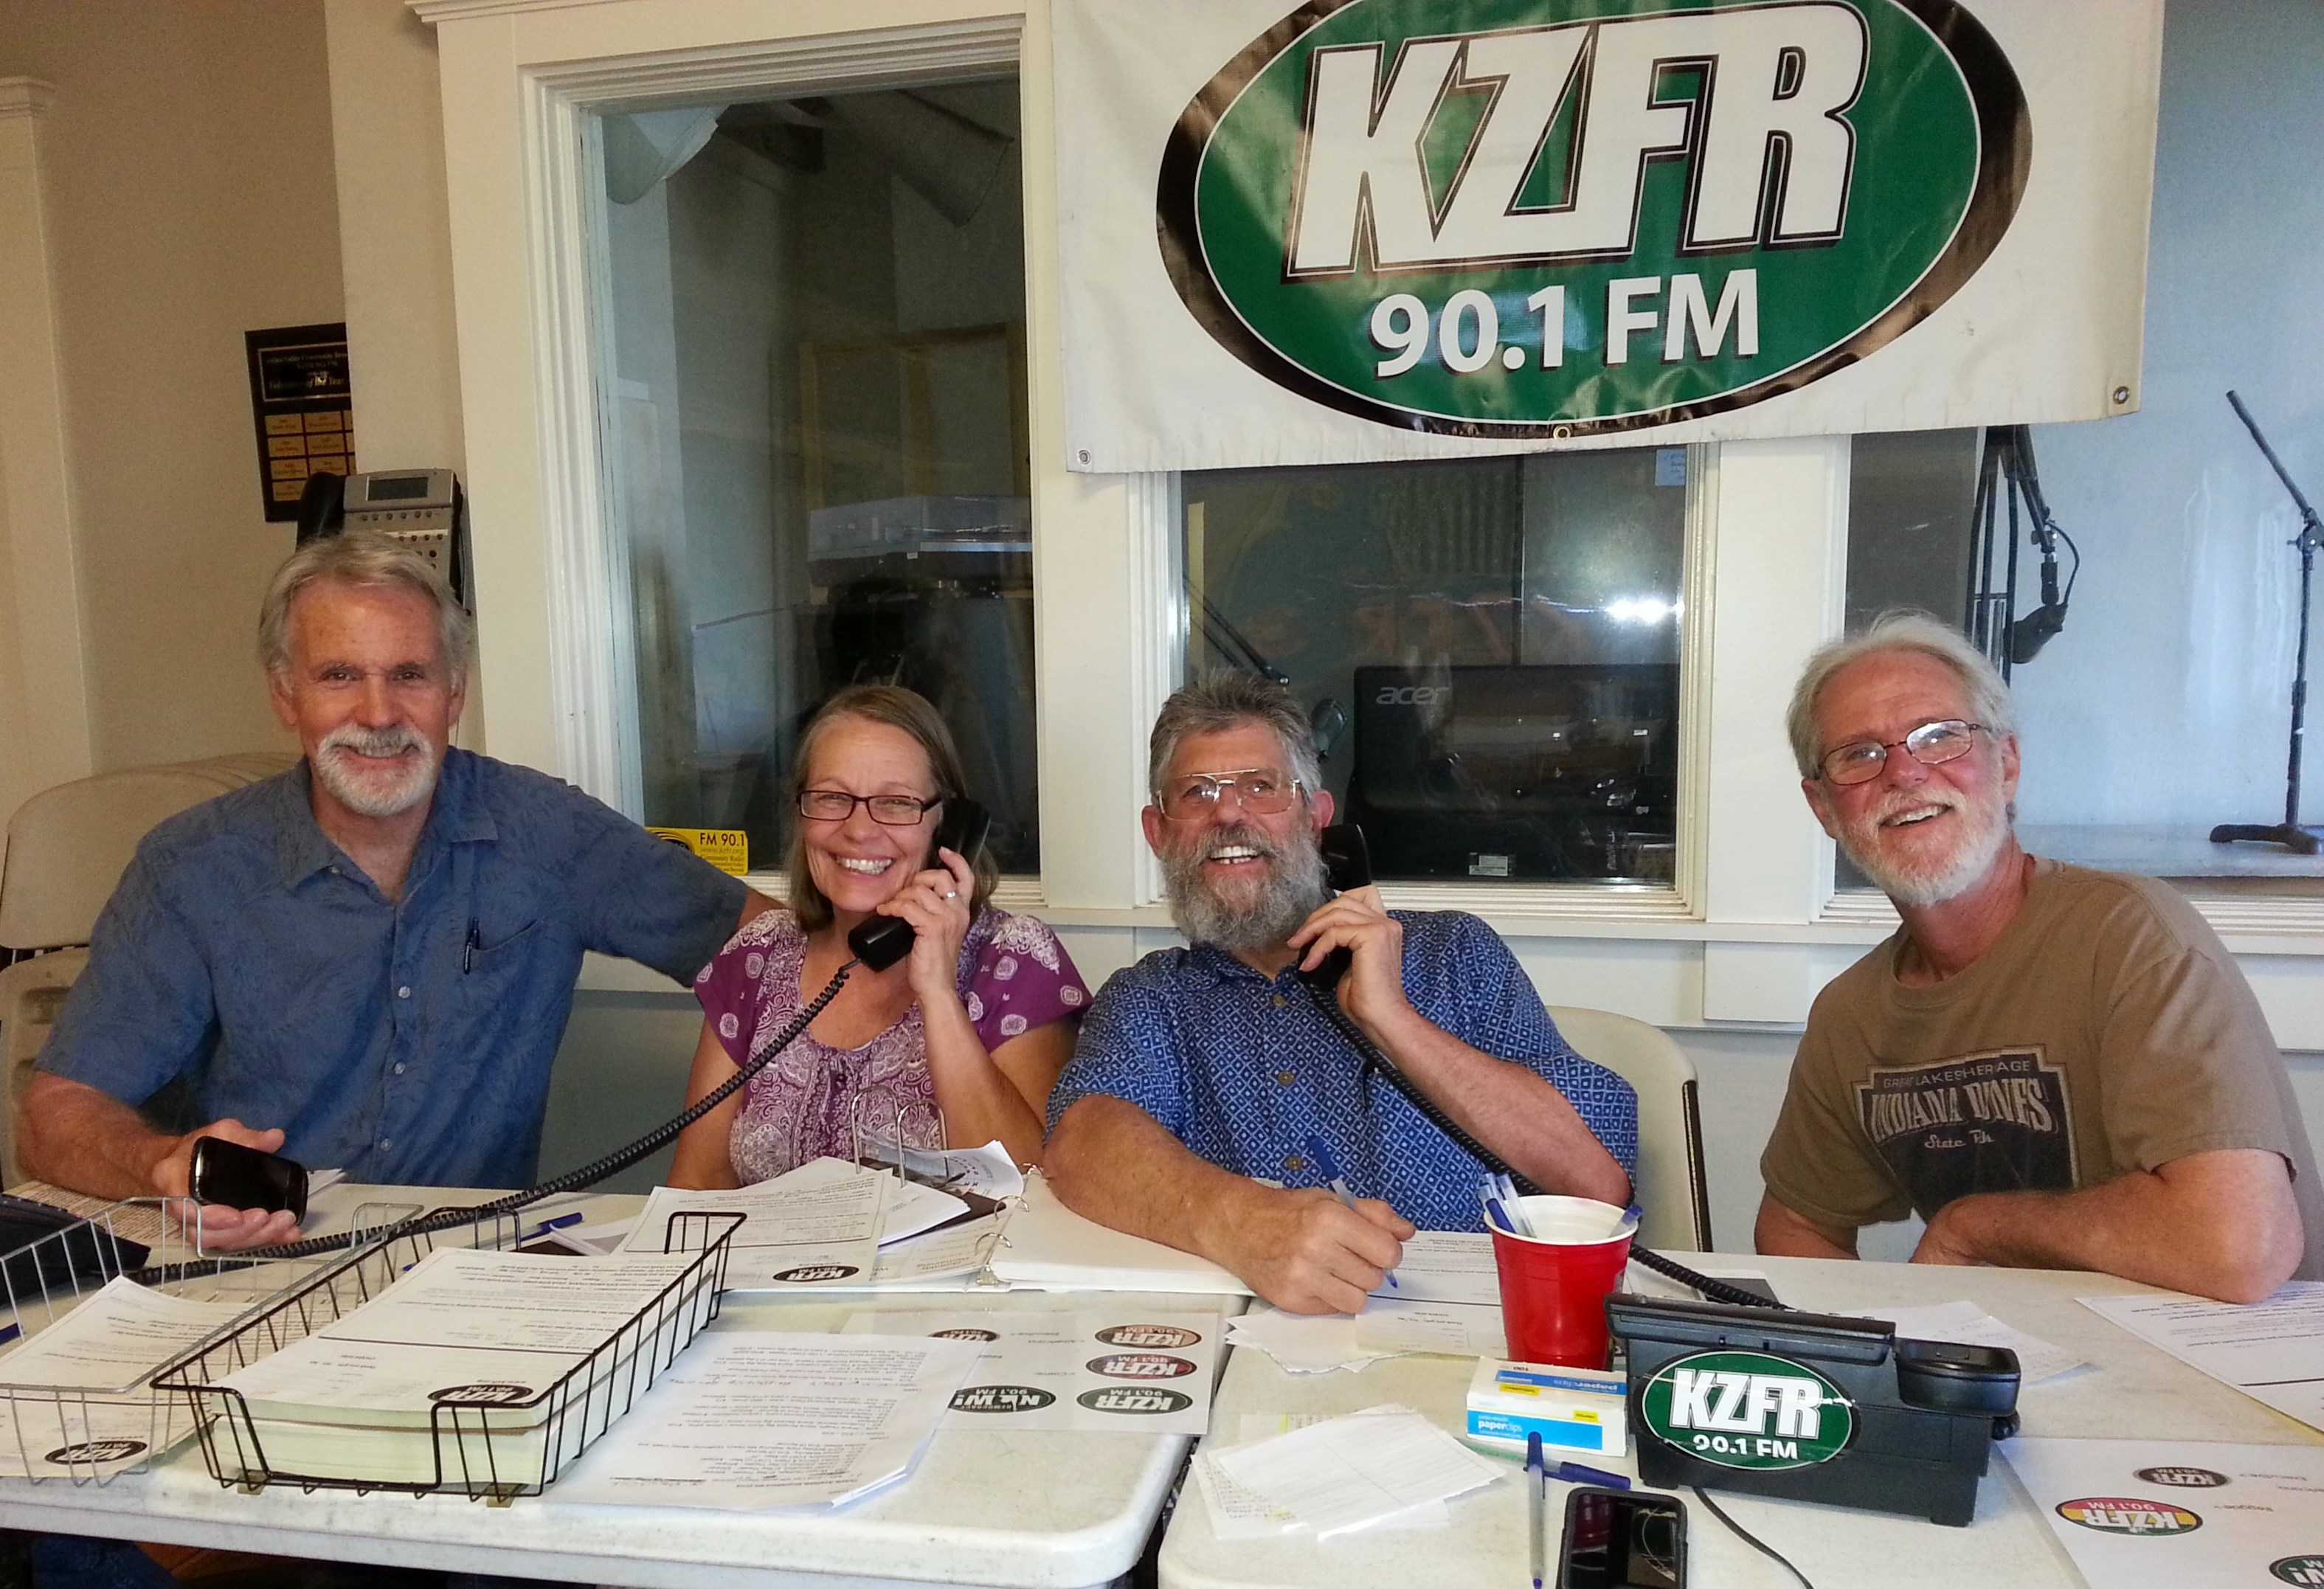 Great volunteers from the non-profit Norton Buffalo Hall/Paradise Grange having fun answering KZFR pledge drive phones. (Fall 2016)